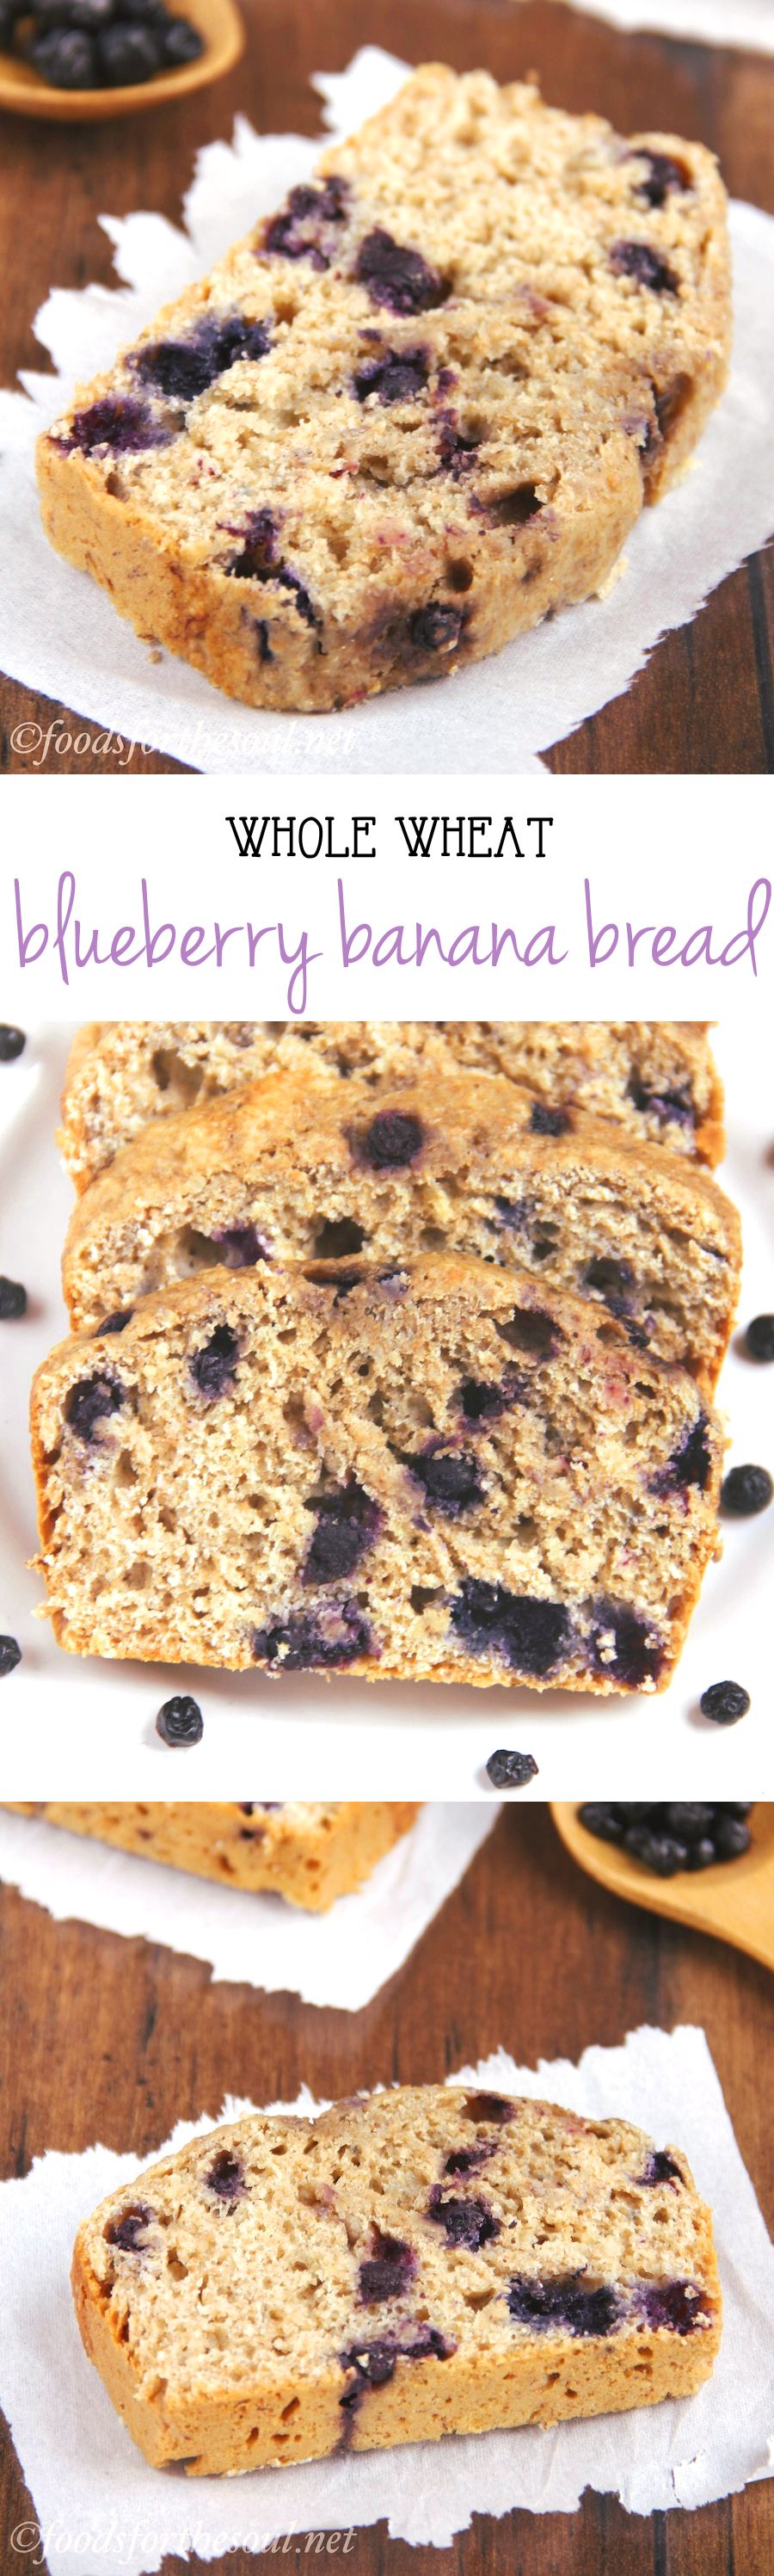 Whole Wheat Blueberry Banana Bread -- an easy recipe for a skinny, clean-eating treat! Just 125 calories & almost 4g of protein!